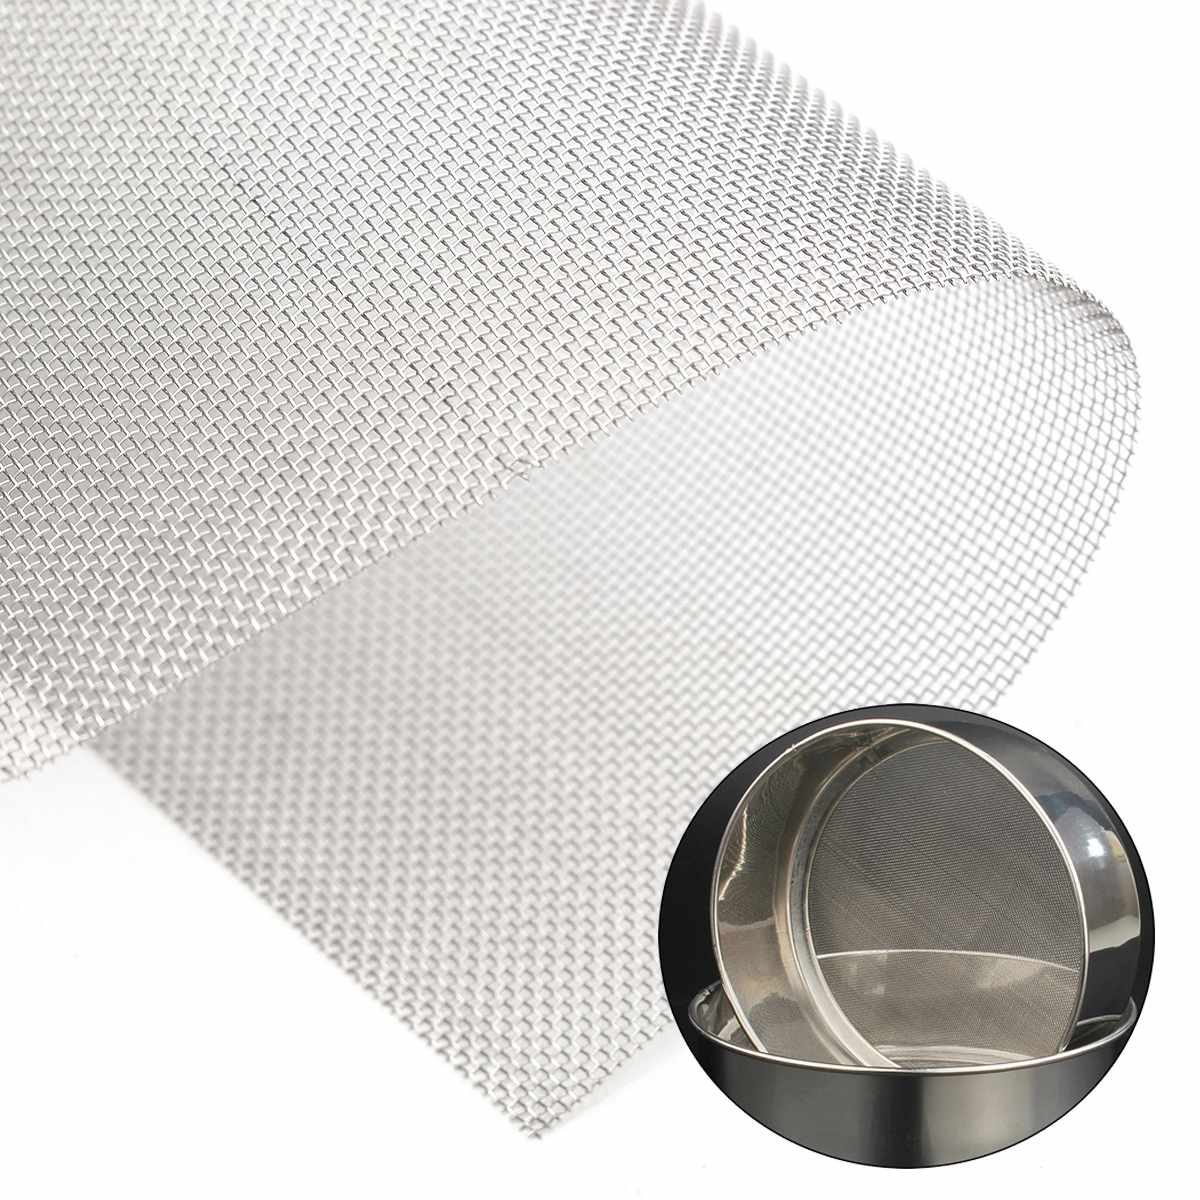 1pc 15x15cm Stainless Steel Woven Wire High Quality Screening Filter Sheet 30 Mesh